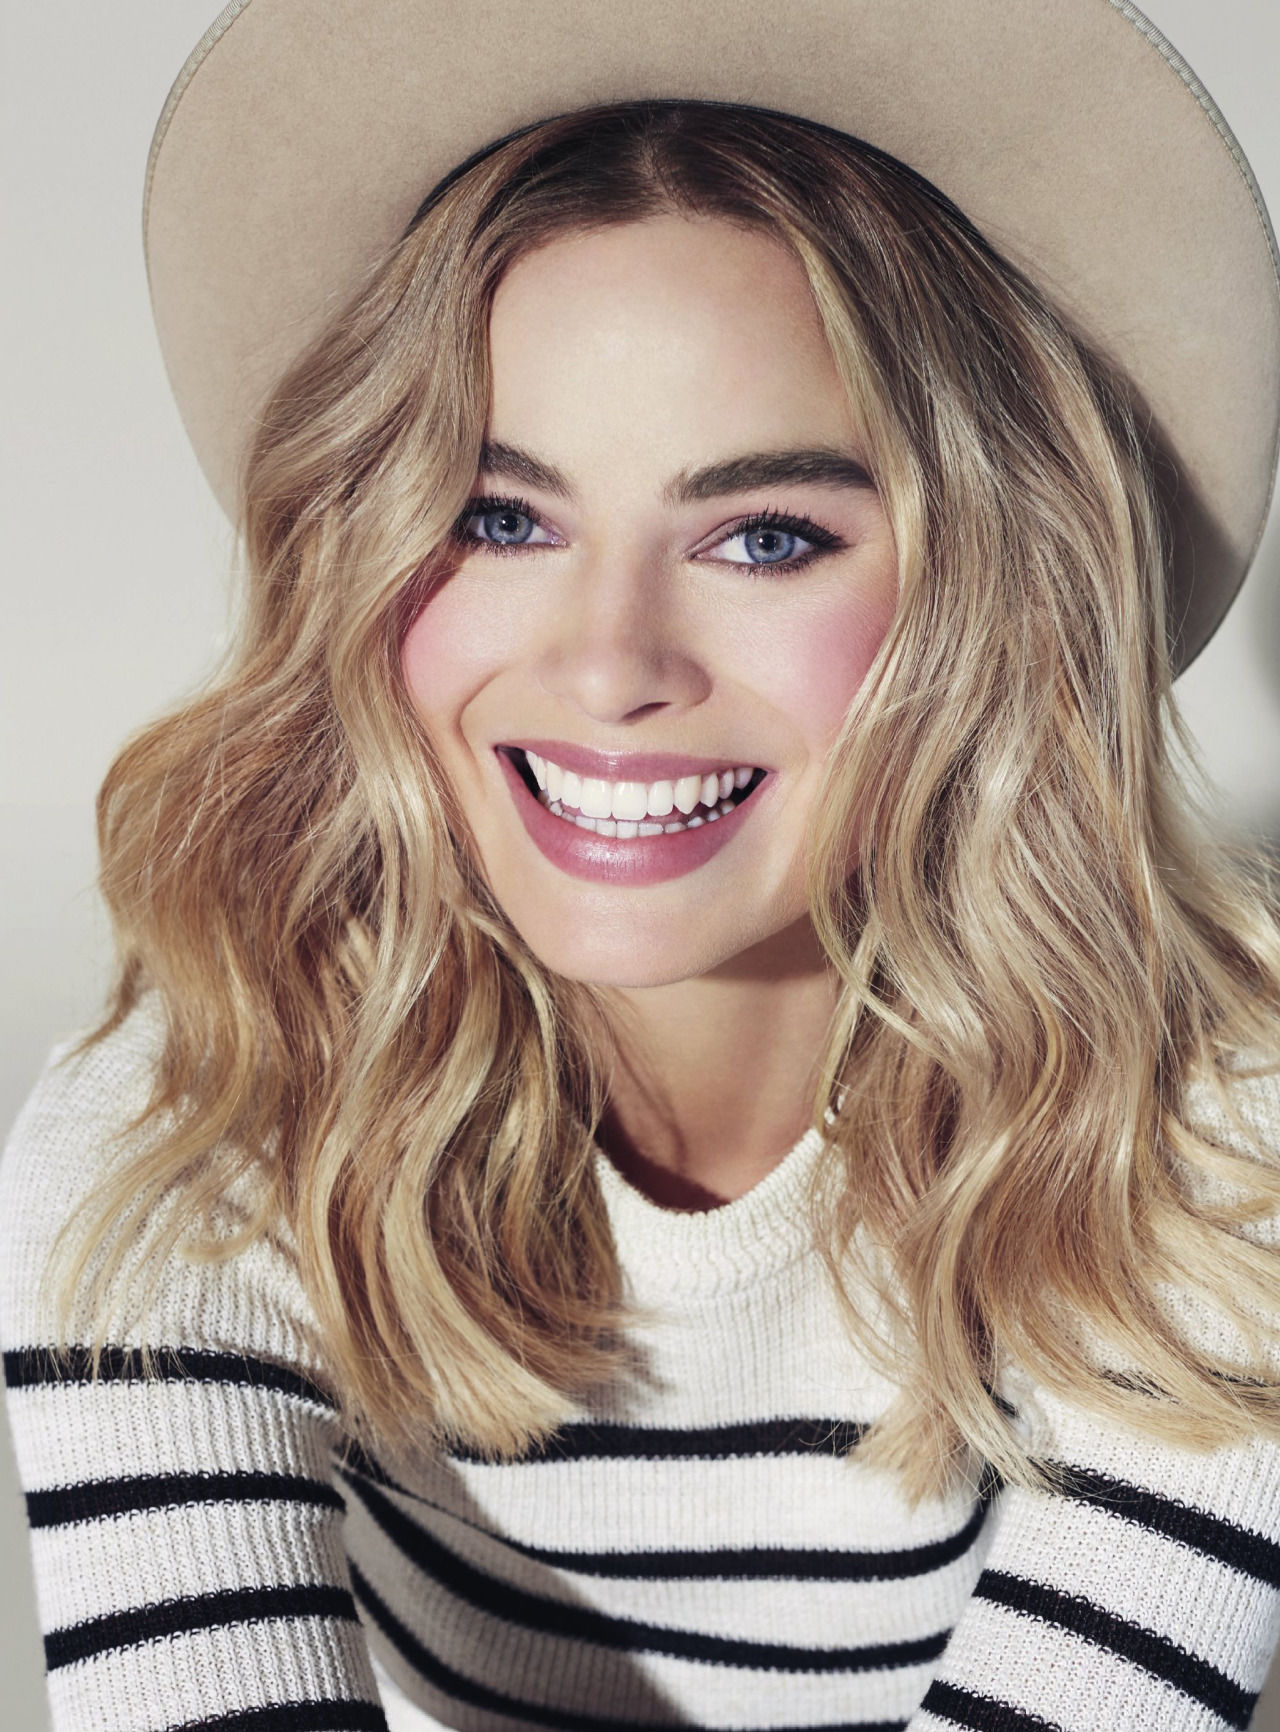 Margot-Robbie-Wiki-Biography-Age-Height-Weight-Profile-Body Measurement